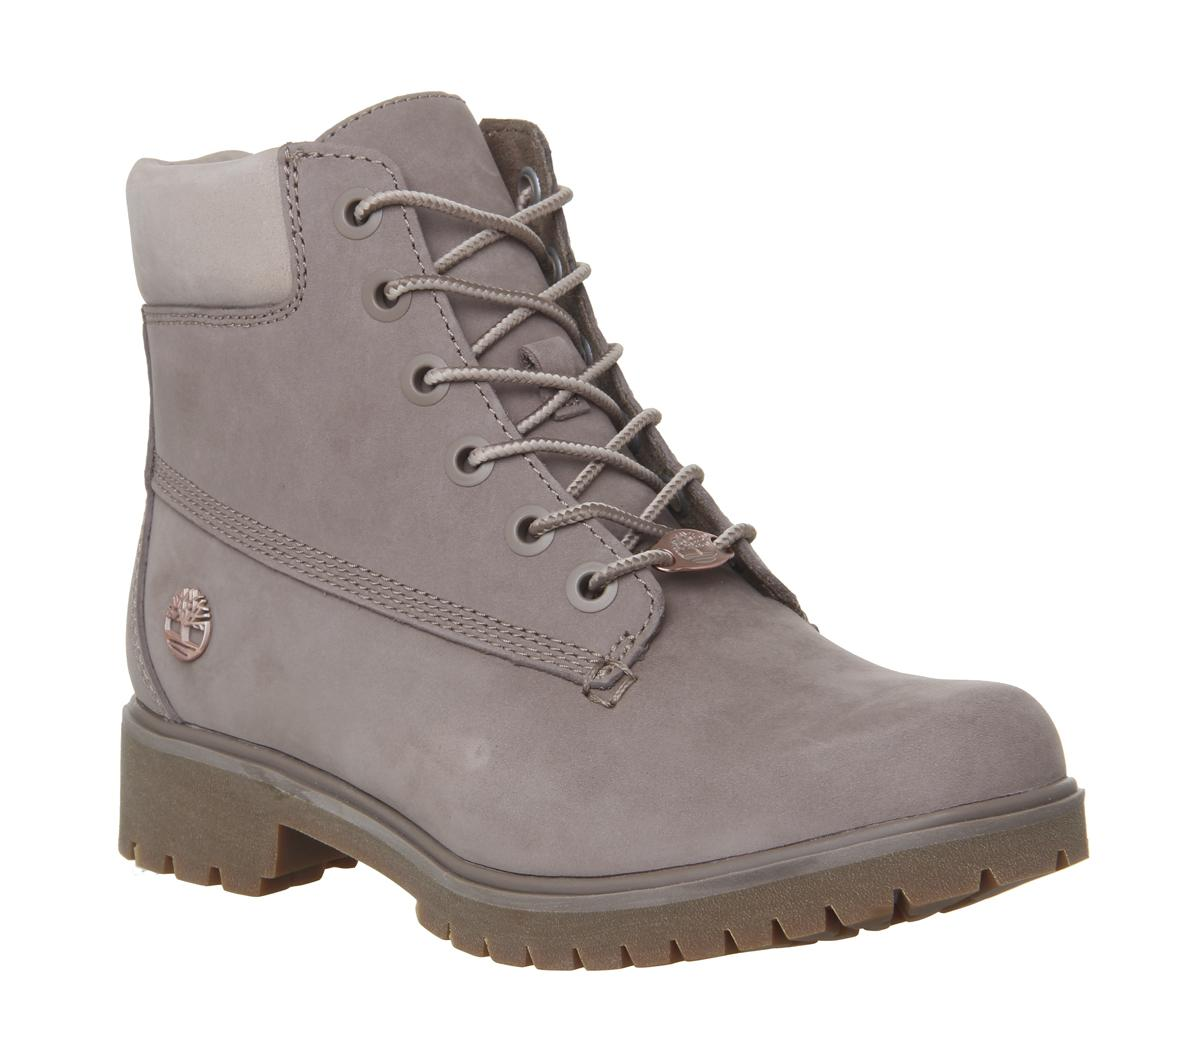 Timberland Desert Force Mid Boot Reviews Trailspace